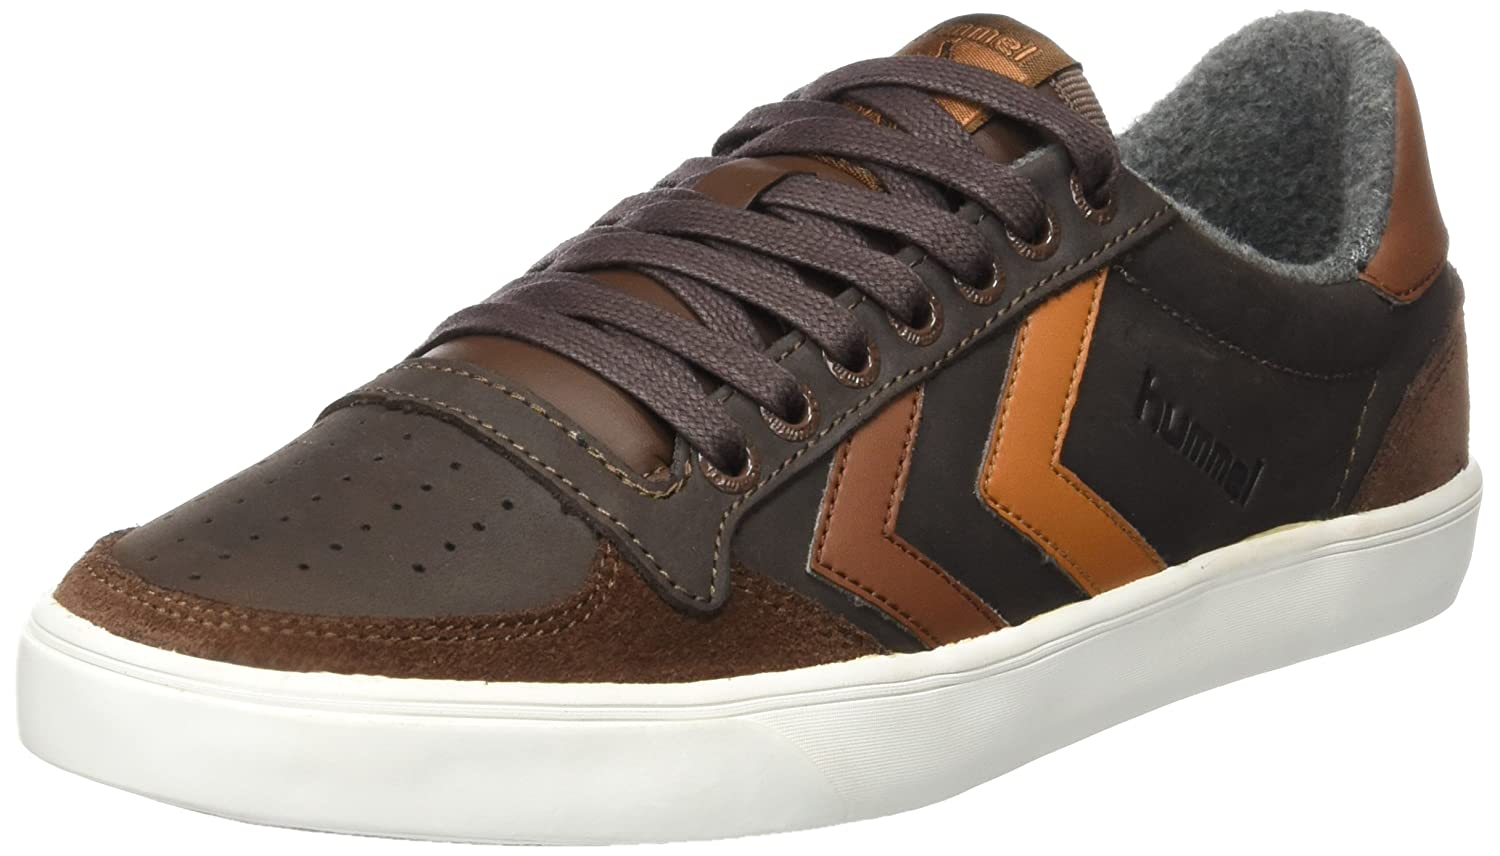 Hummel Unisex-Erwachsene Slimmer Stadil Duo Oiled Low Turnschuhe  | Förderung